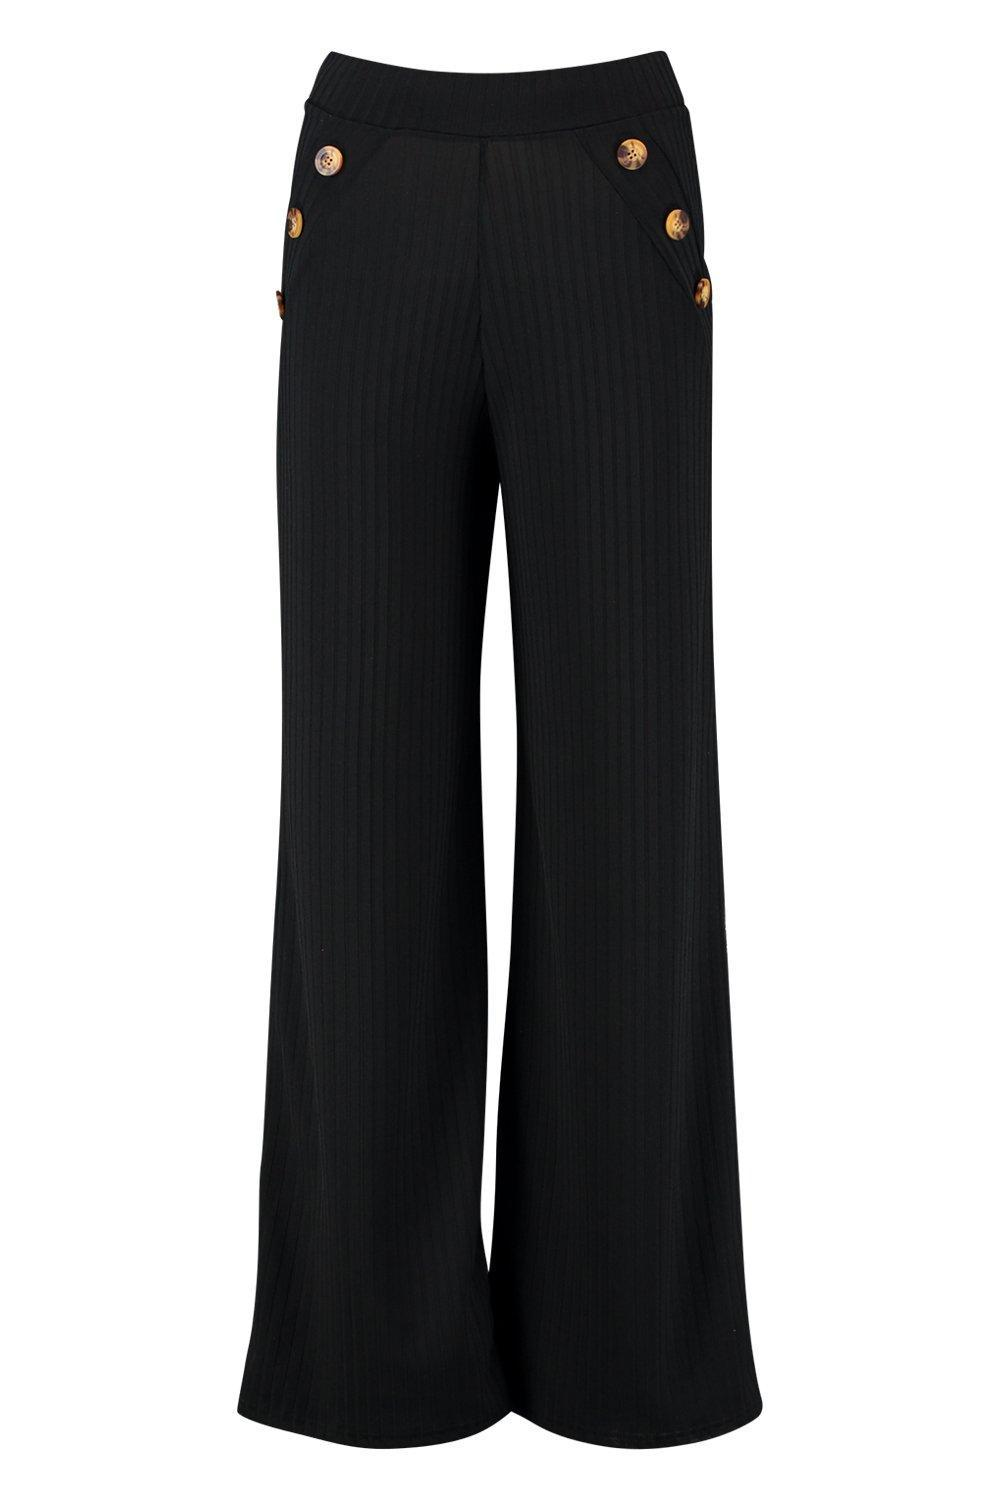 91399c48e278 Boohoo - Black Petite Mock Horn Button Rib Wide Leg Pants - Lyst. View  fullscreen